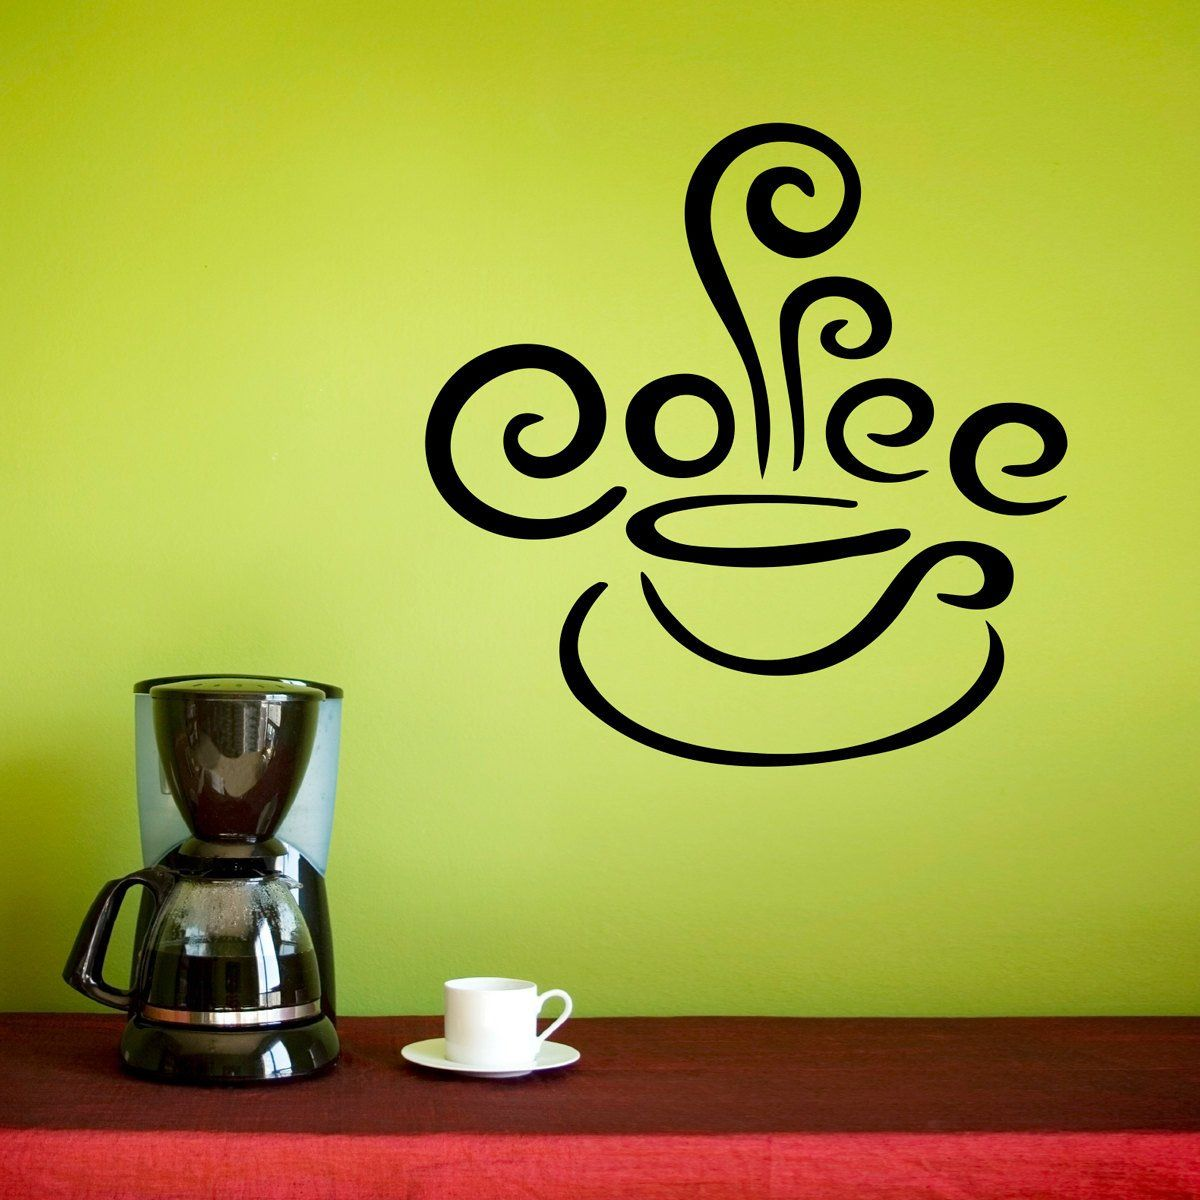 Coffee Cup With Steam Wall Decal Svg Pinterest